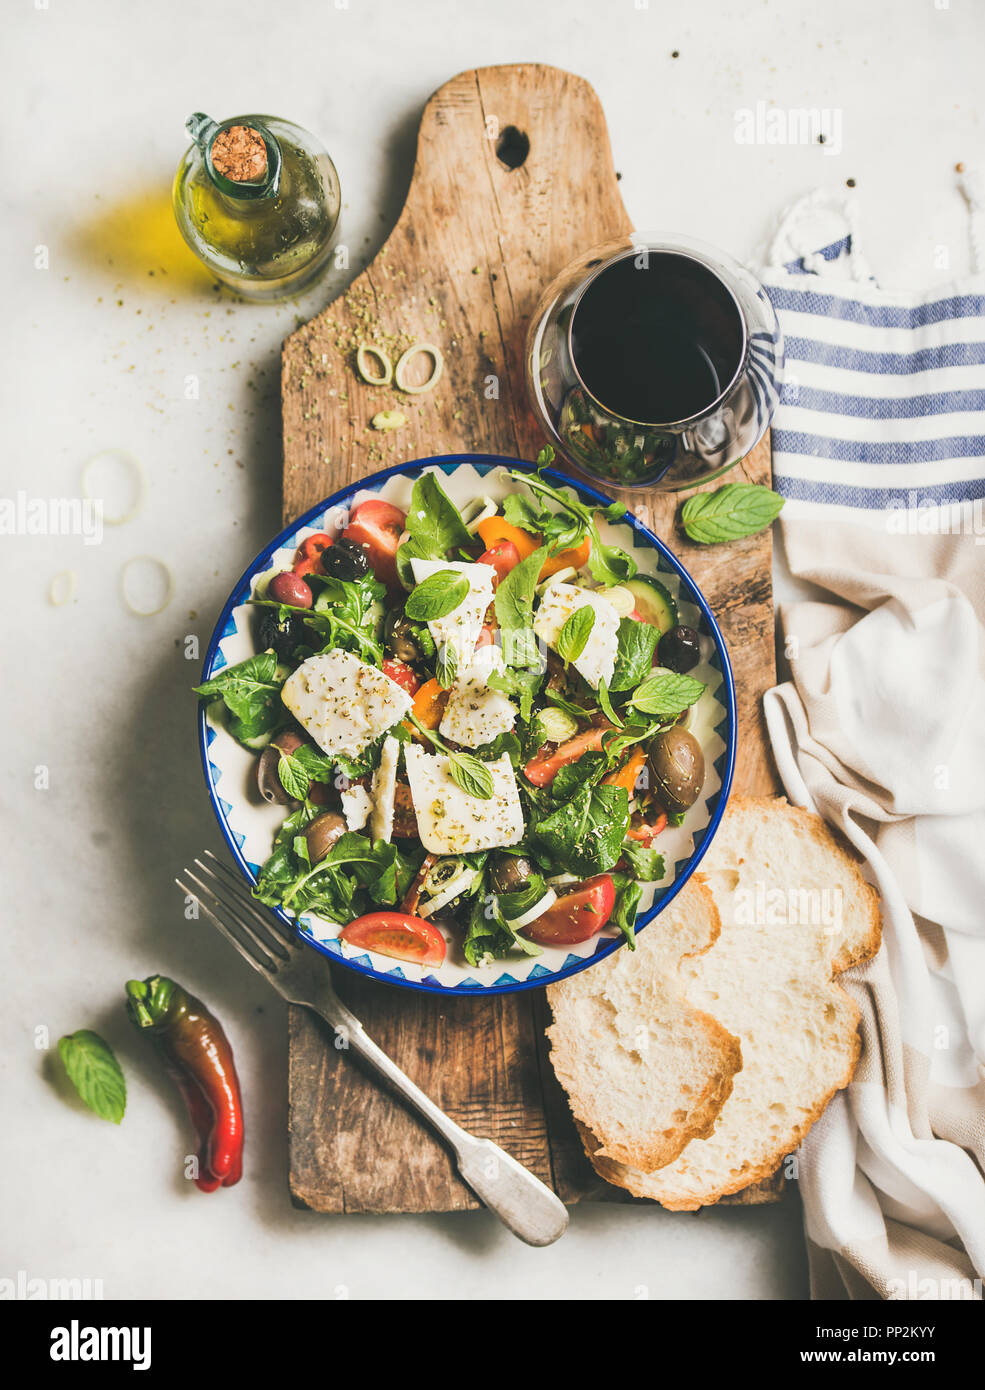 Greek salad with feta cheese, olive oil and red wine - Stock Image